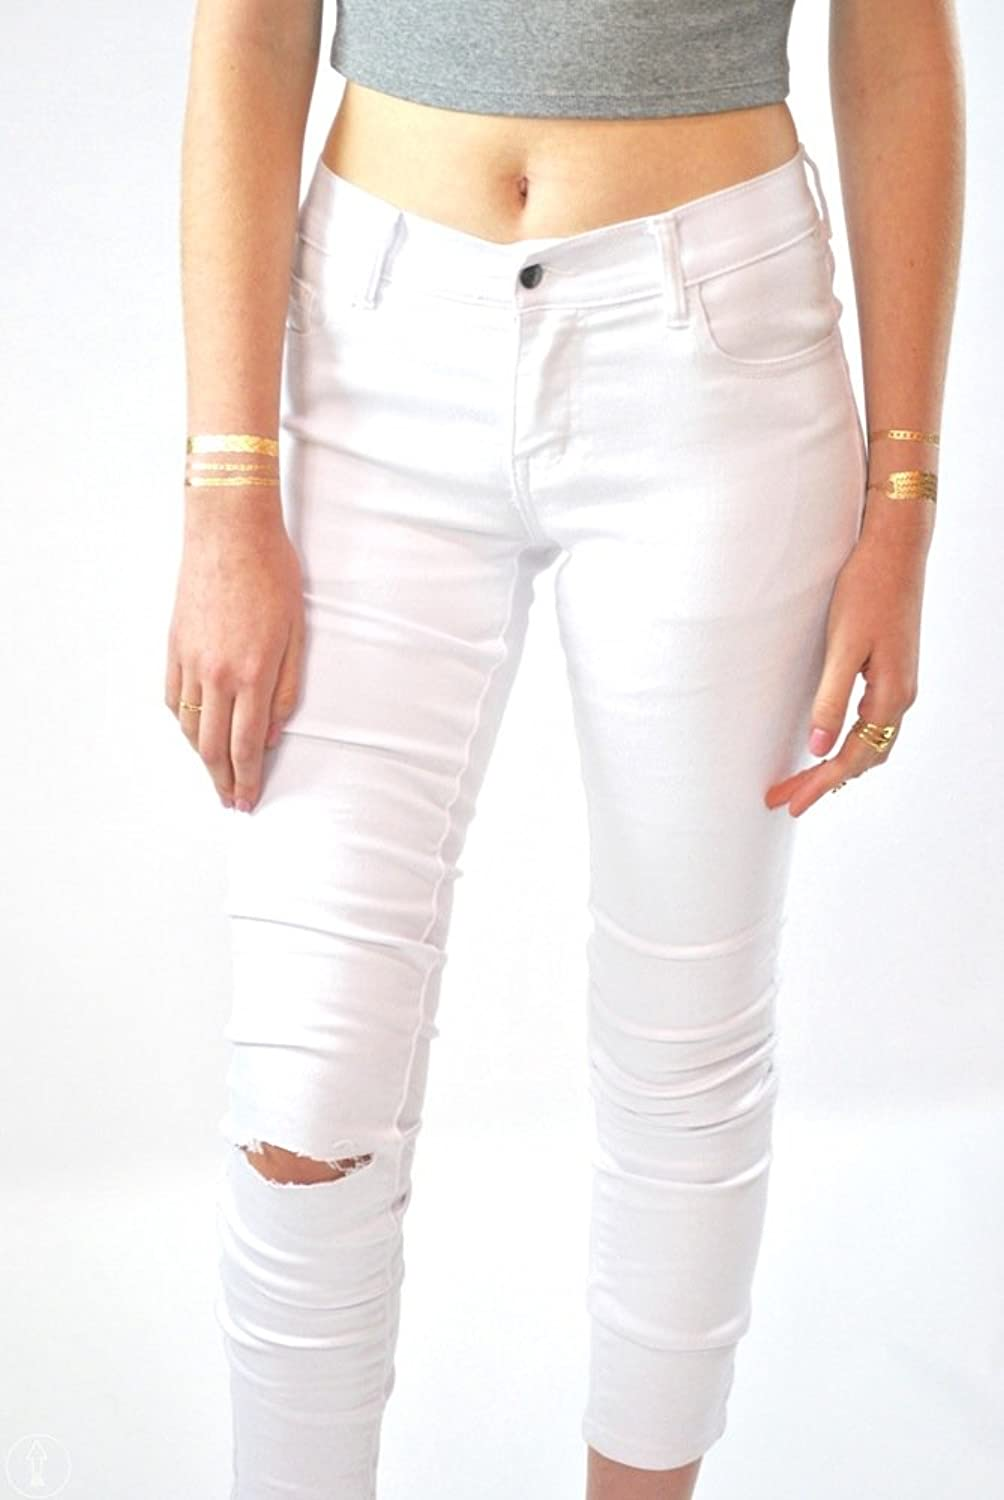 Up Above Co Denim Women White Jeans, Distressed Jeans, Ripped Jeans, Plus Size Jeans, Stretchy Skinny Jeans